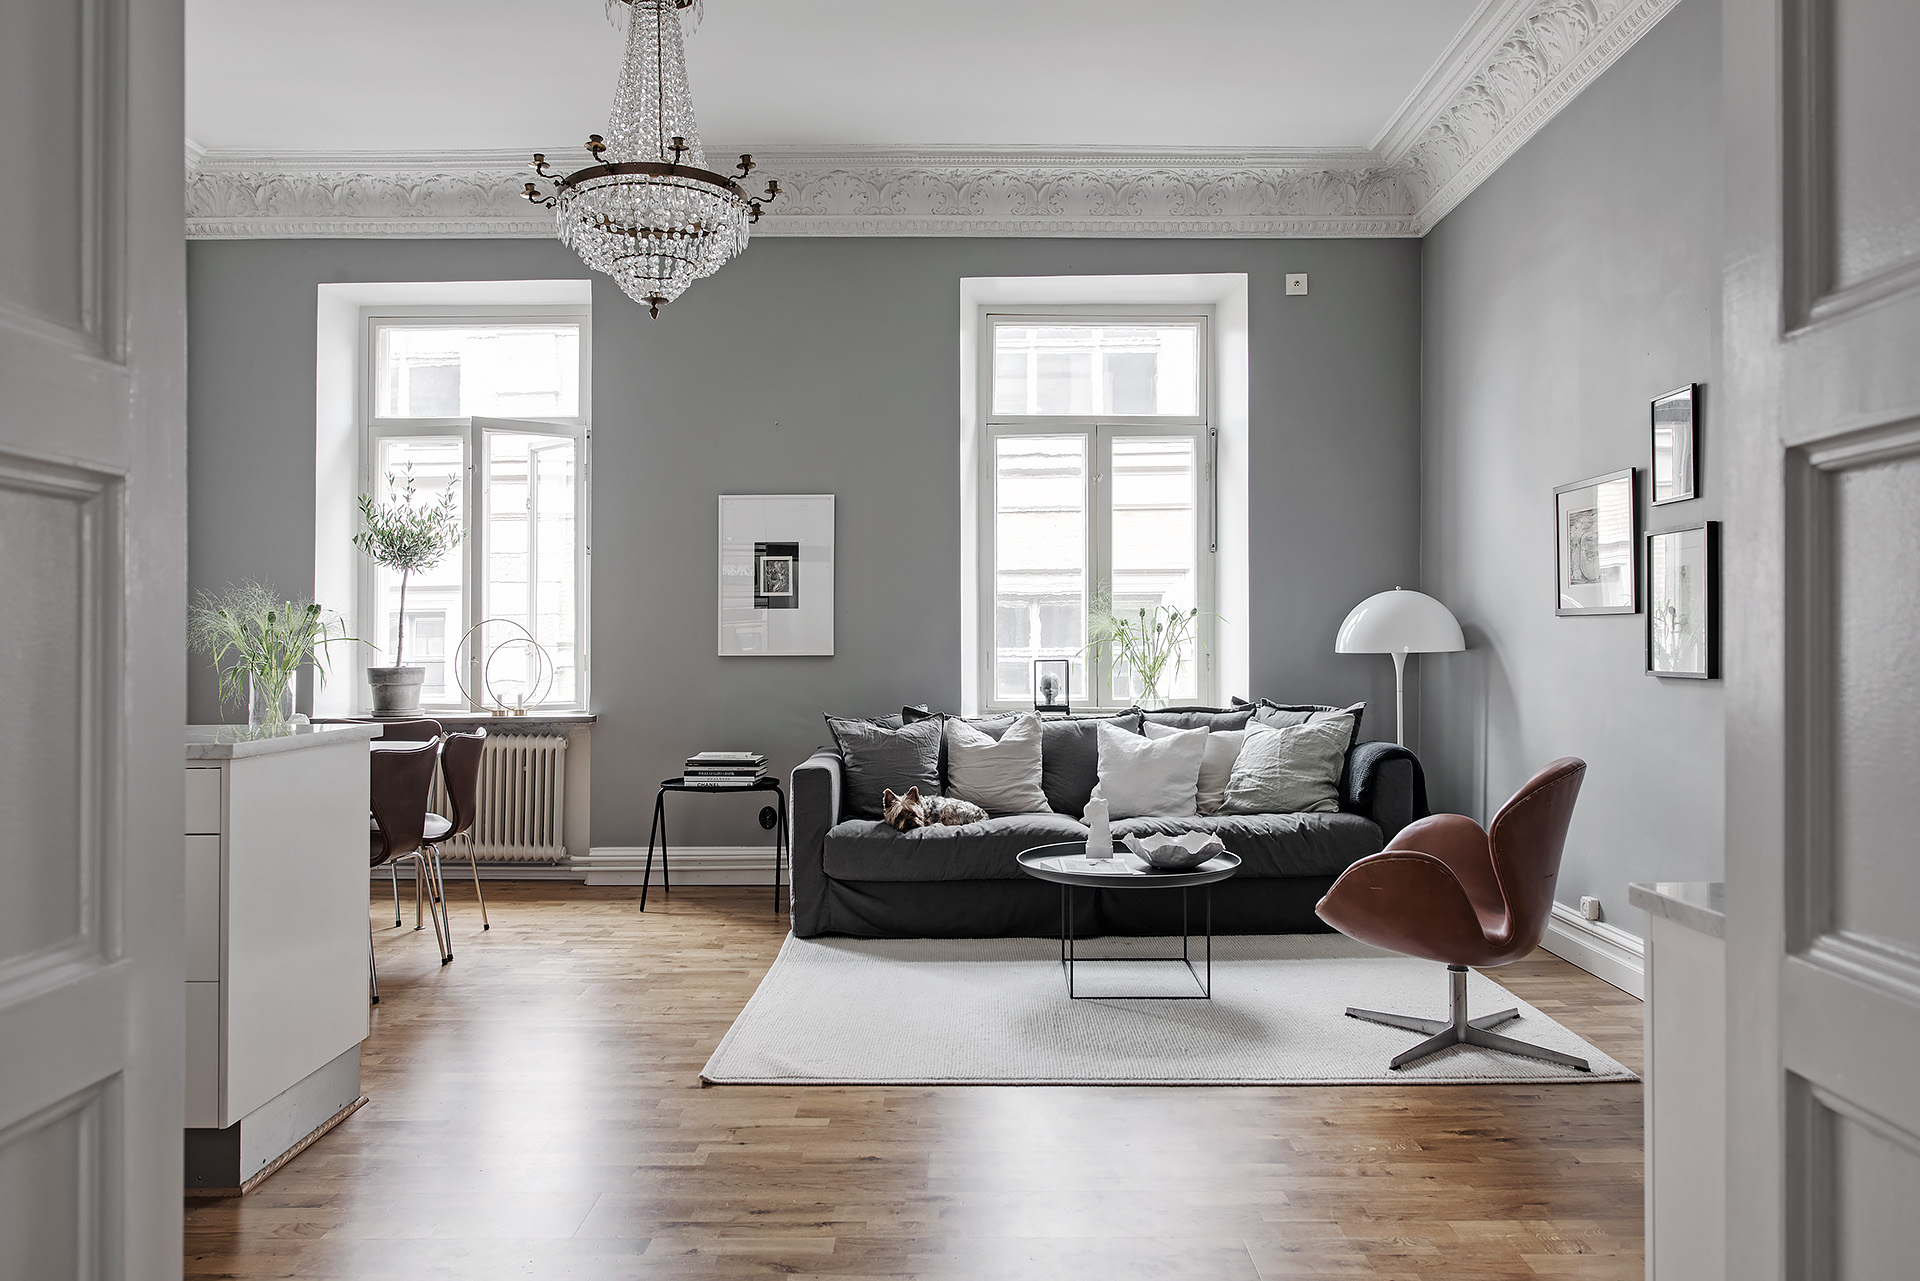 Beautiful and cozy home in grey coco lapine design for Pareti sala colorate